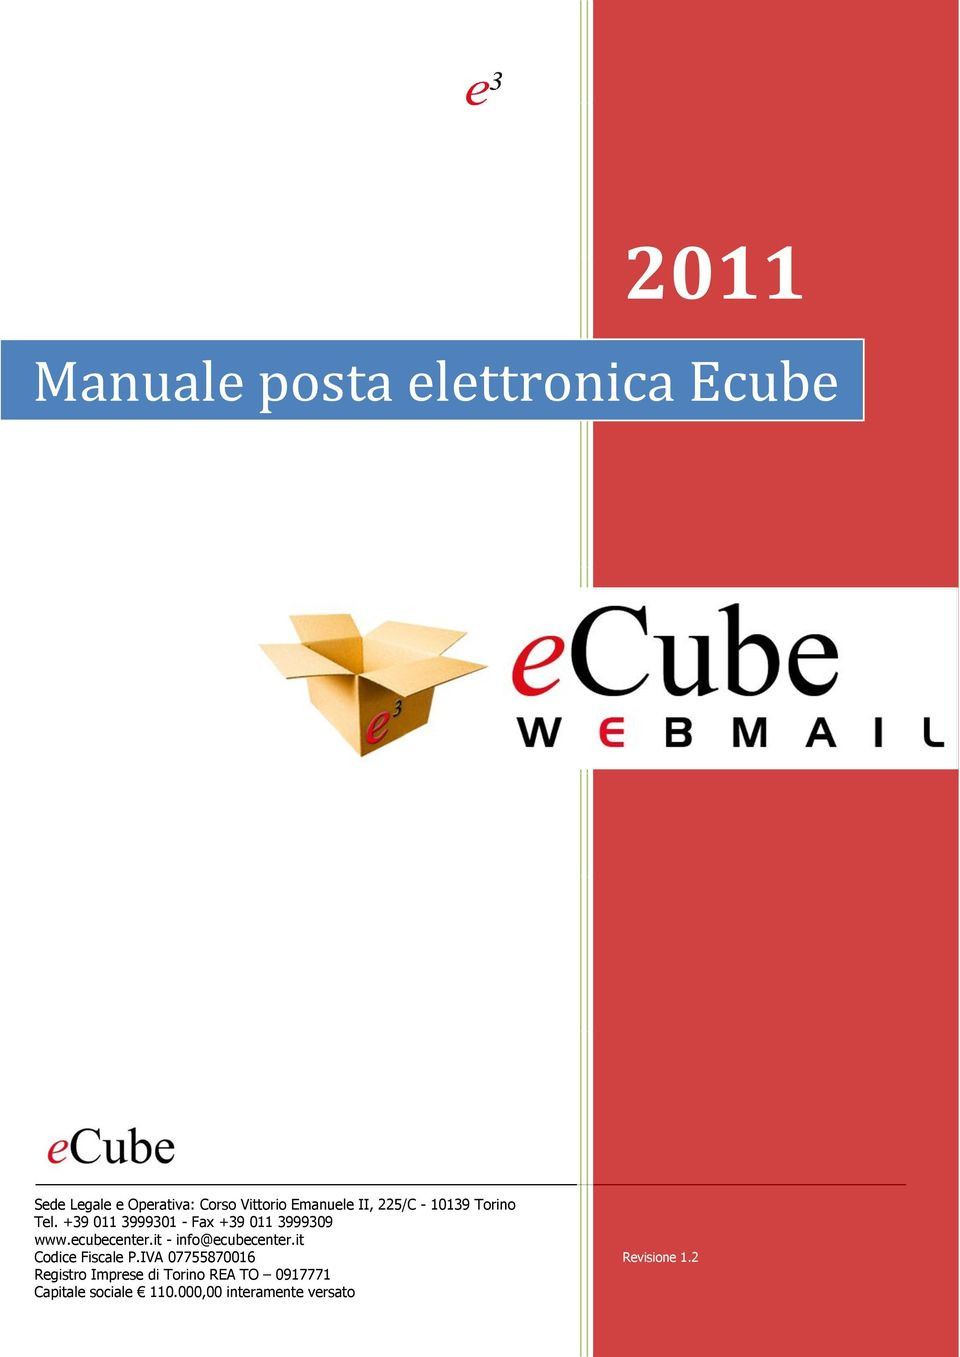 ecubecenter.it - info@ecubecenter.it Codice Fiscale P.